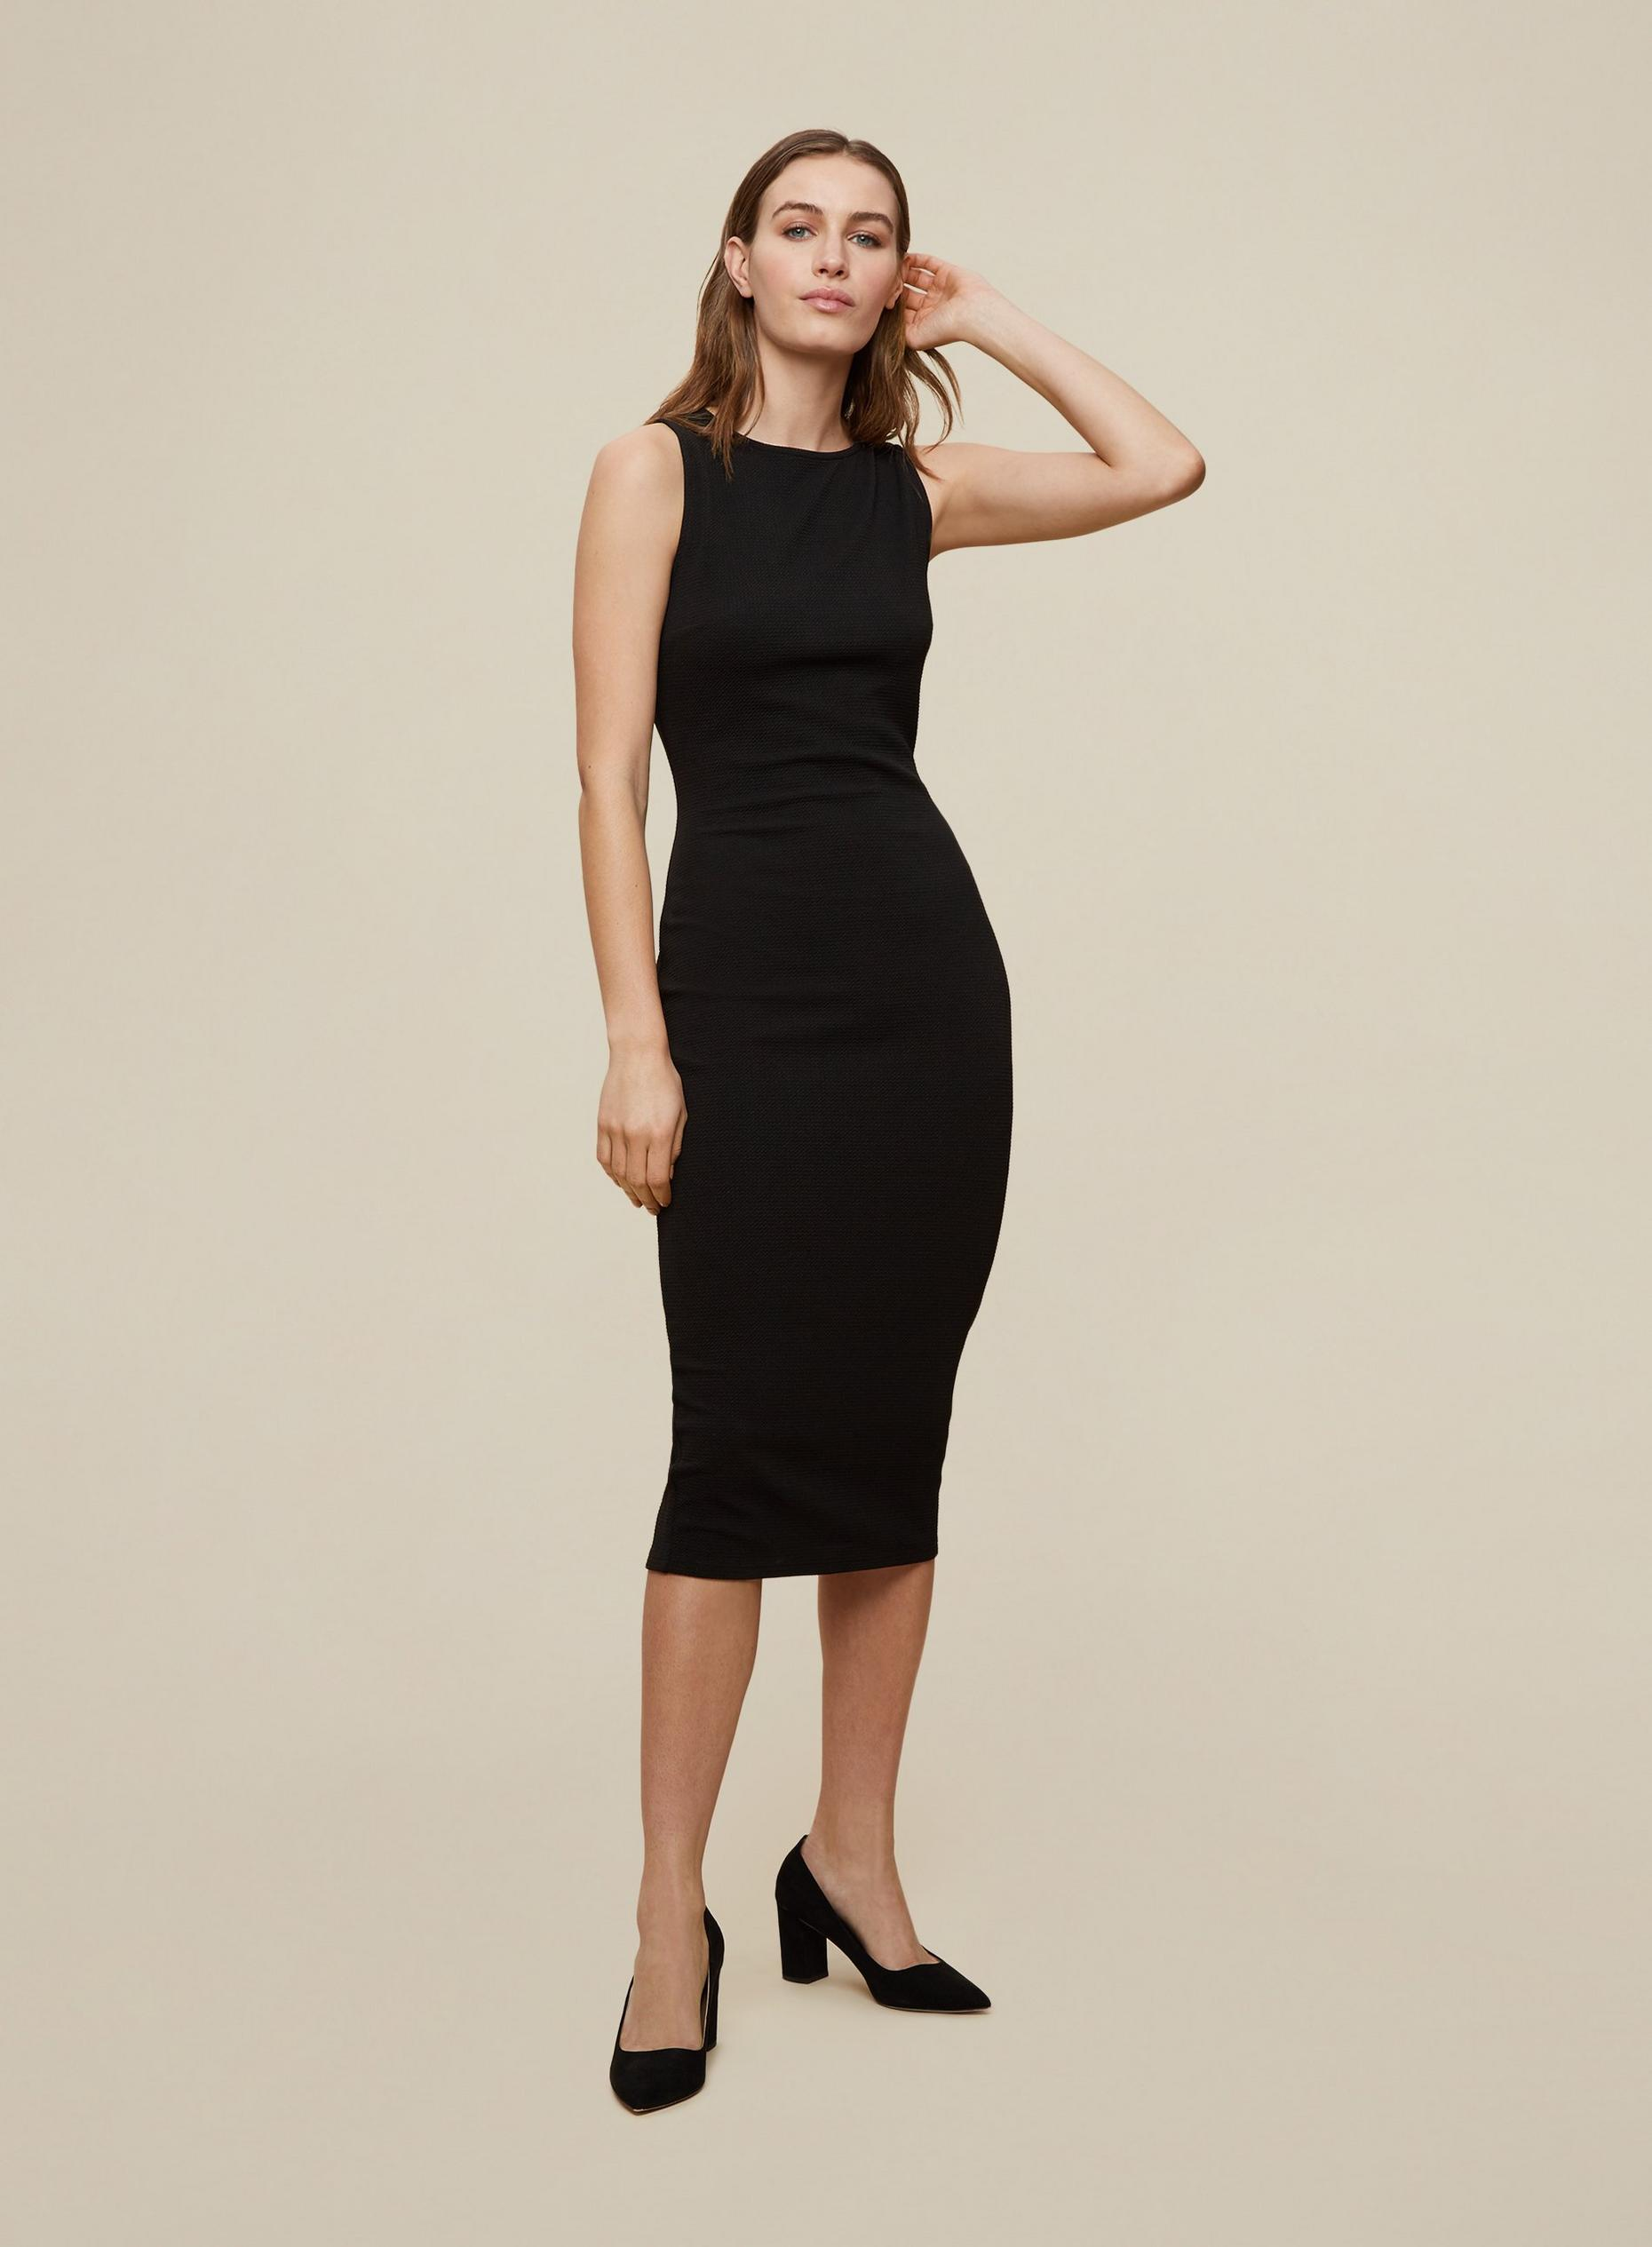 Black Sleeveless Bodycon Dress